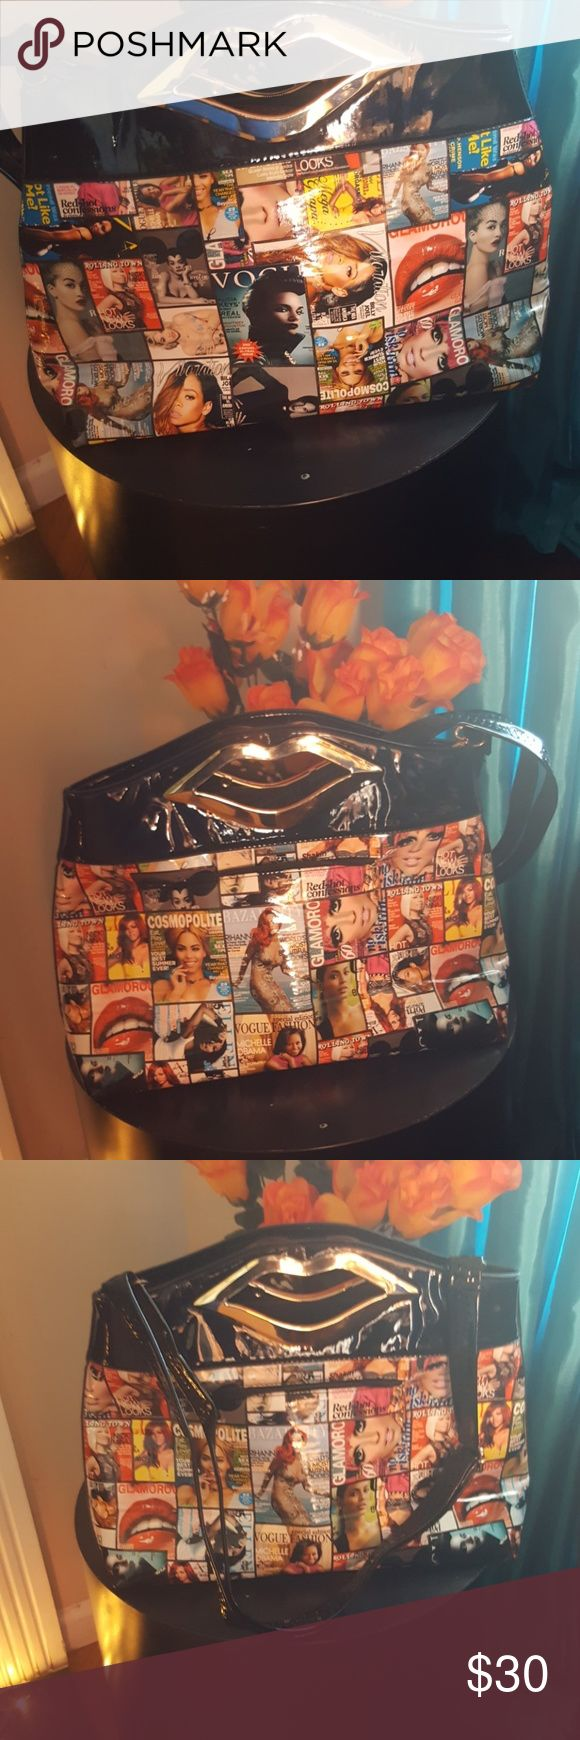 Large clutch purse with strap All the ladies we love Michelle Obama Rihanna Beyonce Alicia Keys and many more. This is a large clutch purse it has  inside compartments for cell phone glasses. 1 zipper compartment outside Bags